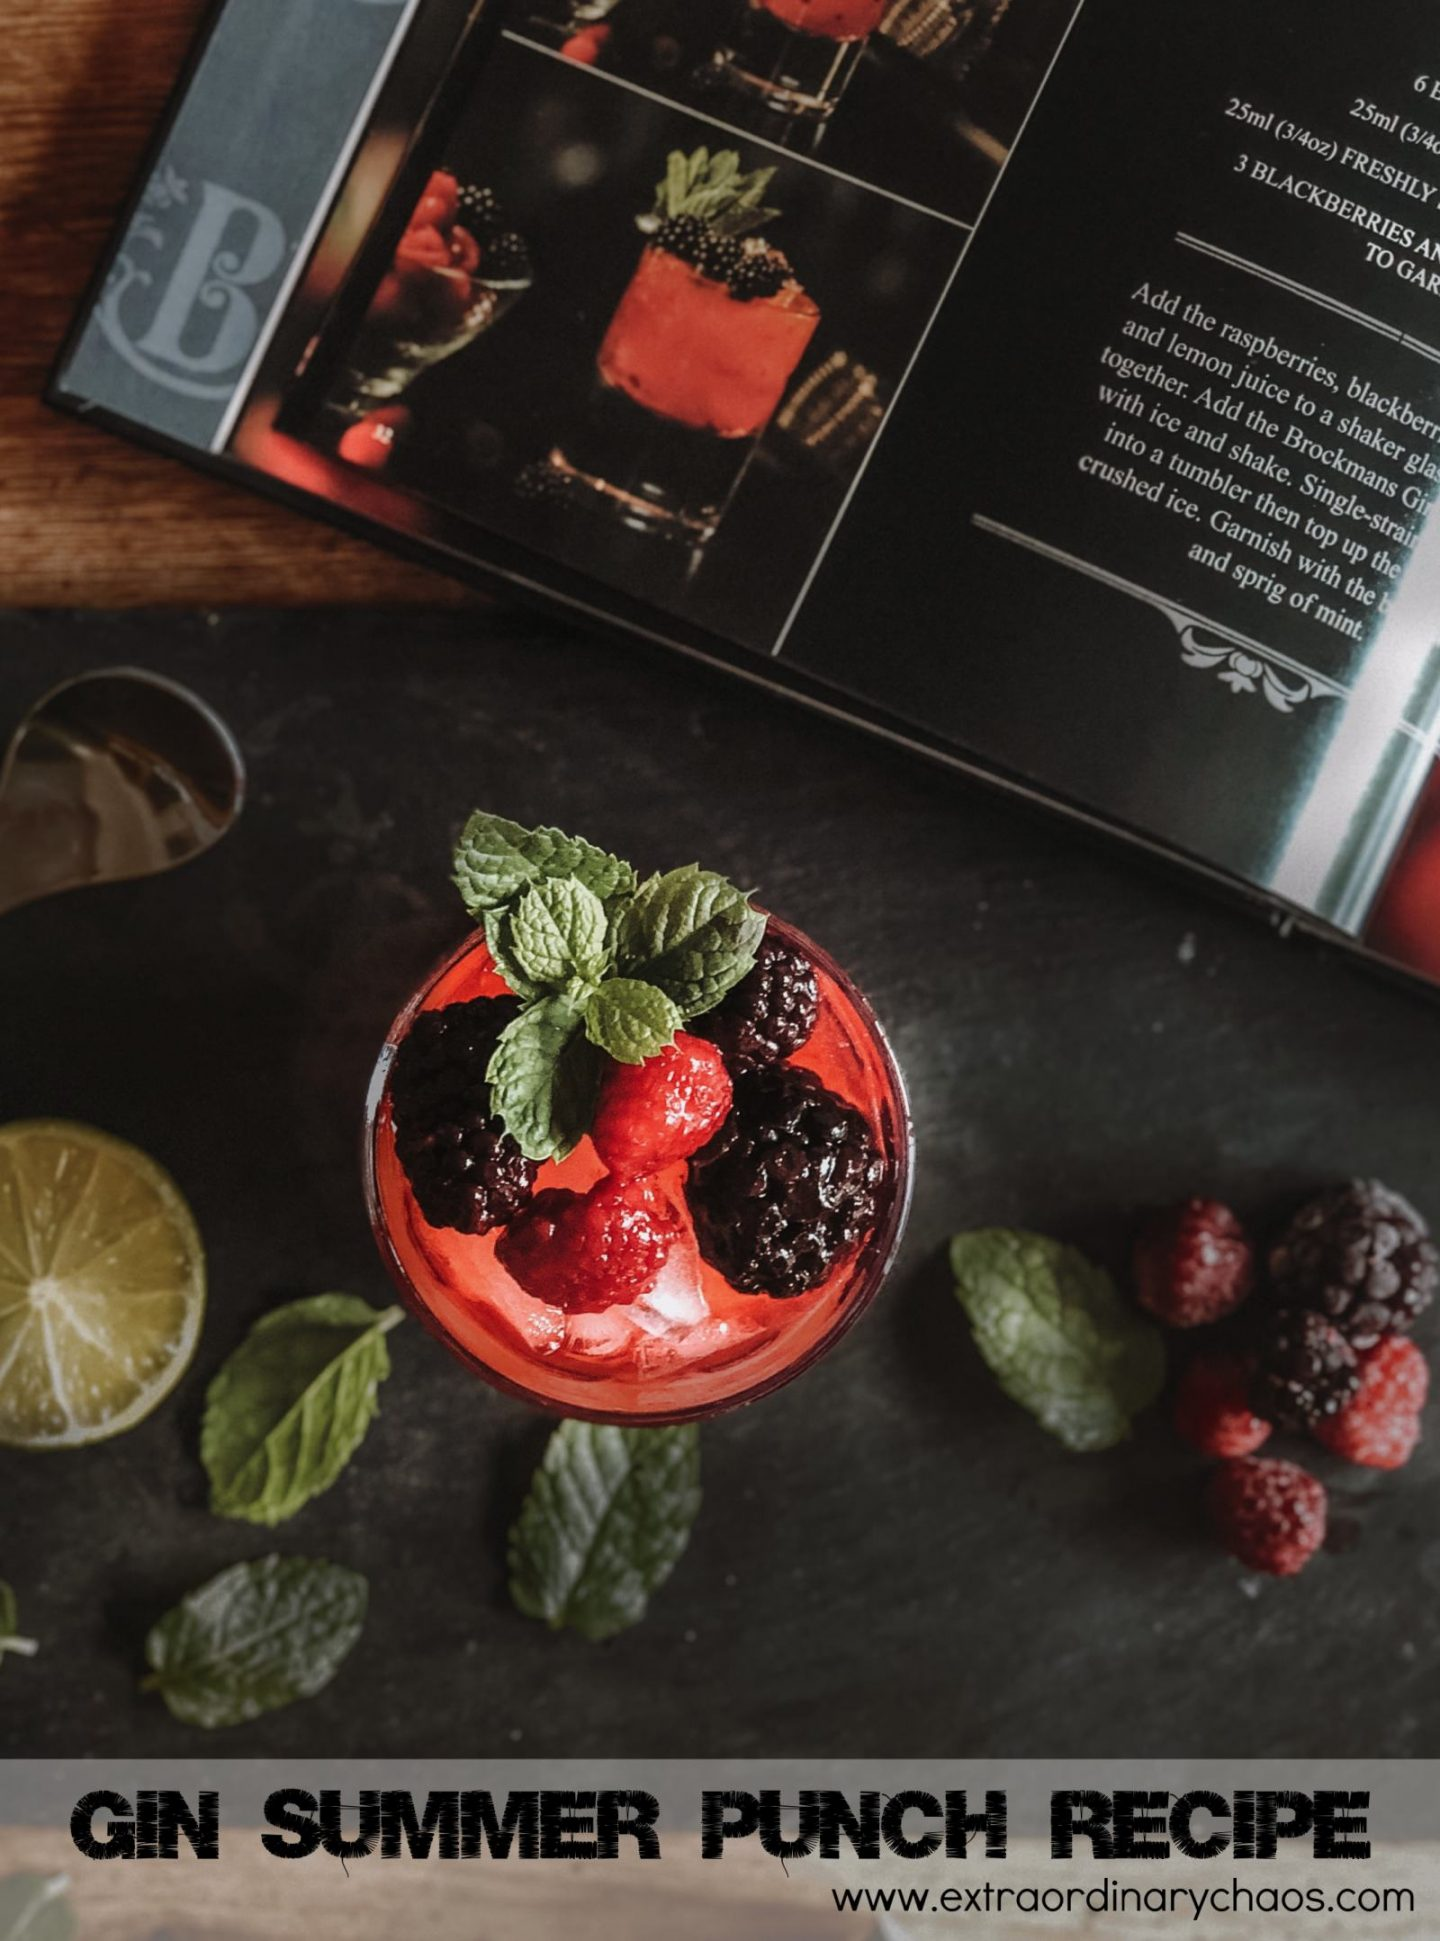 Easy gin summer punch recipe made with Brockmans Gin from the Brockmans Black Book Of Gin Cocktails